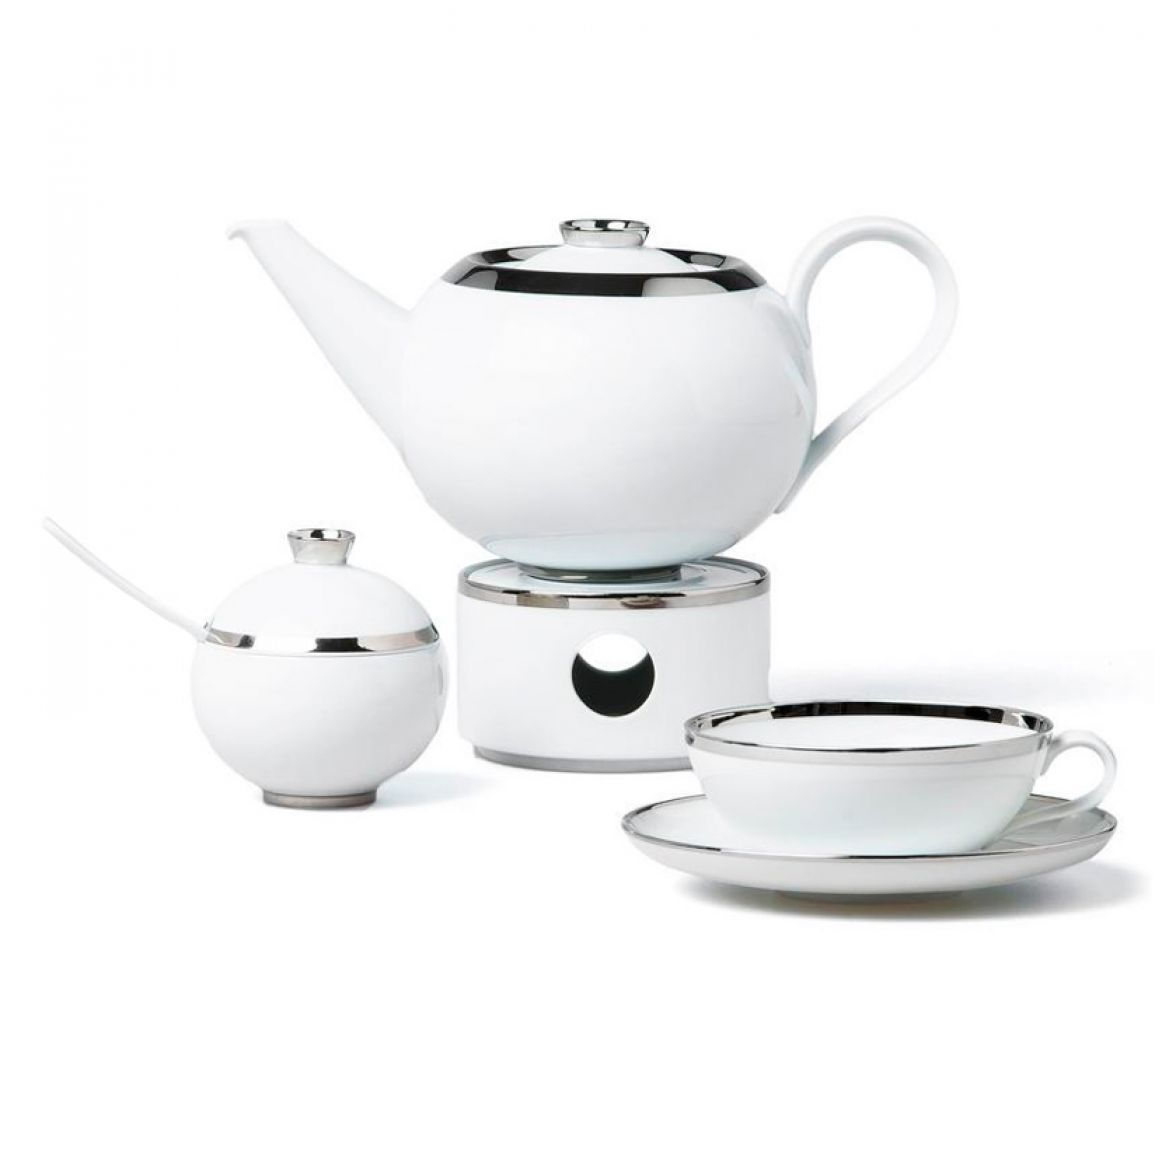 TREASURE PLATINUM tea service фото цена